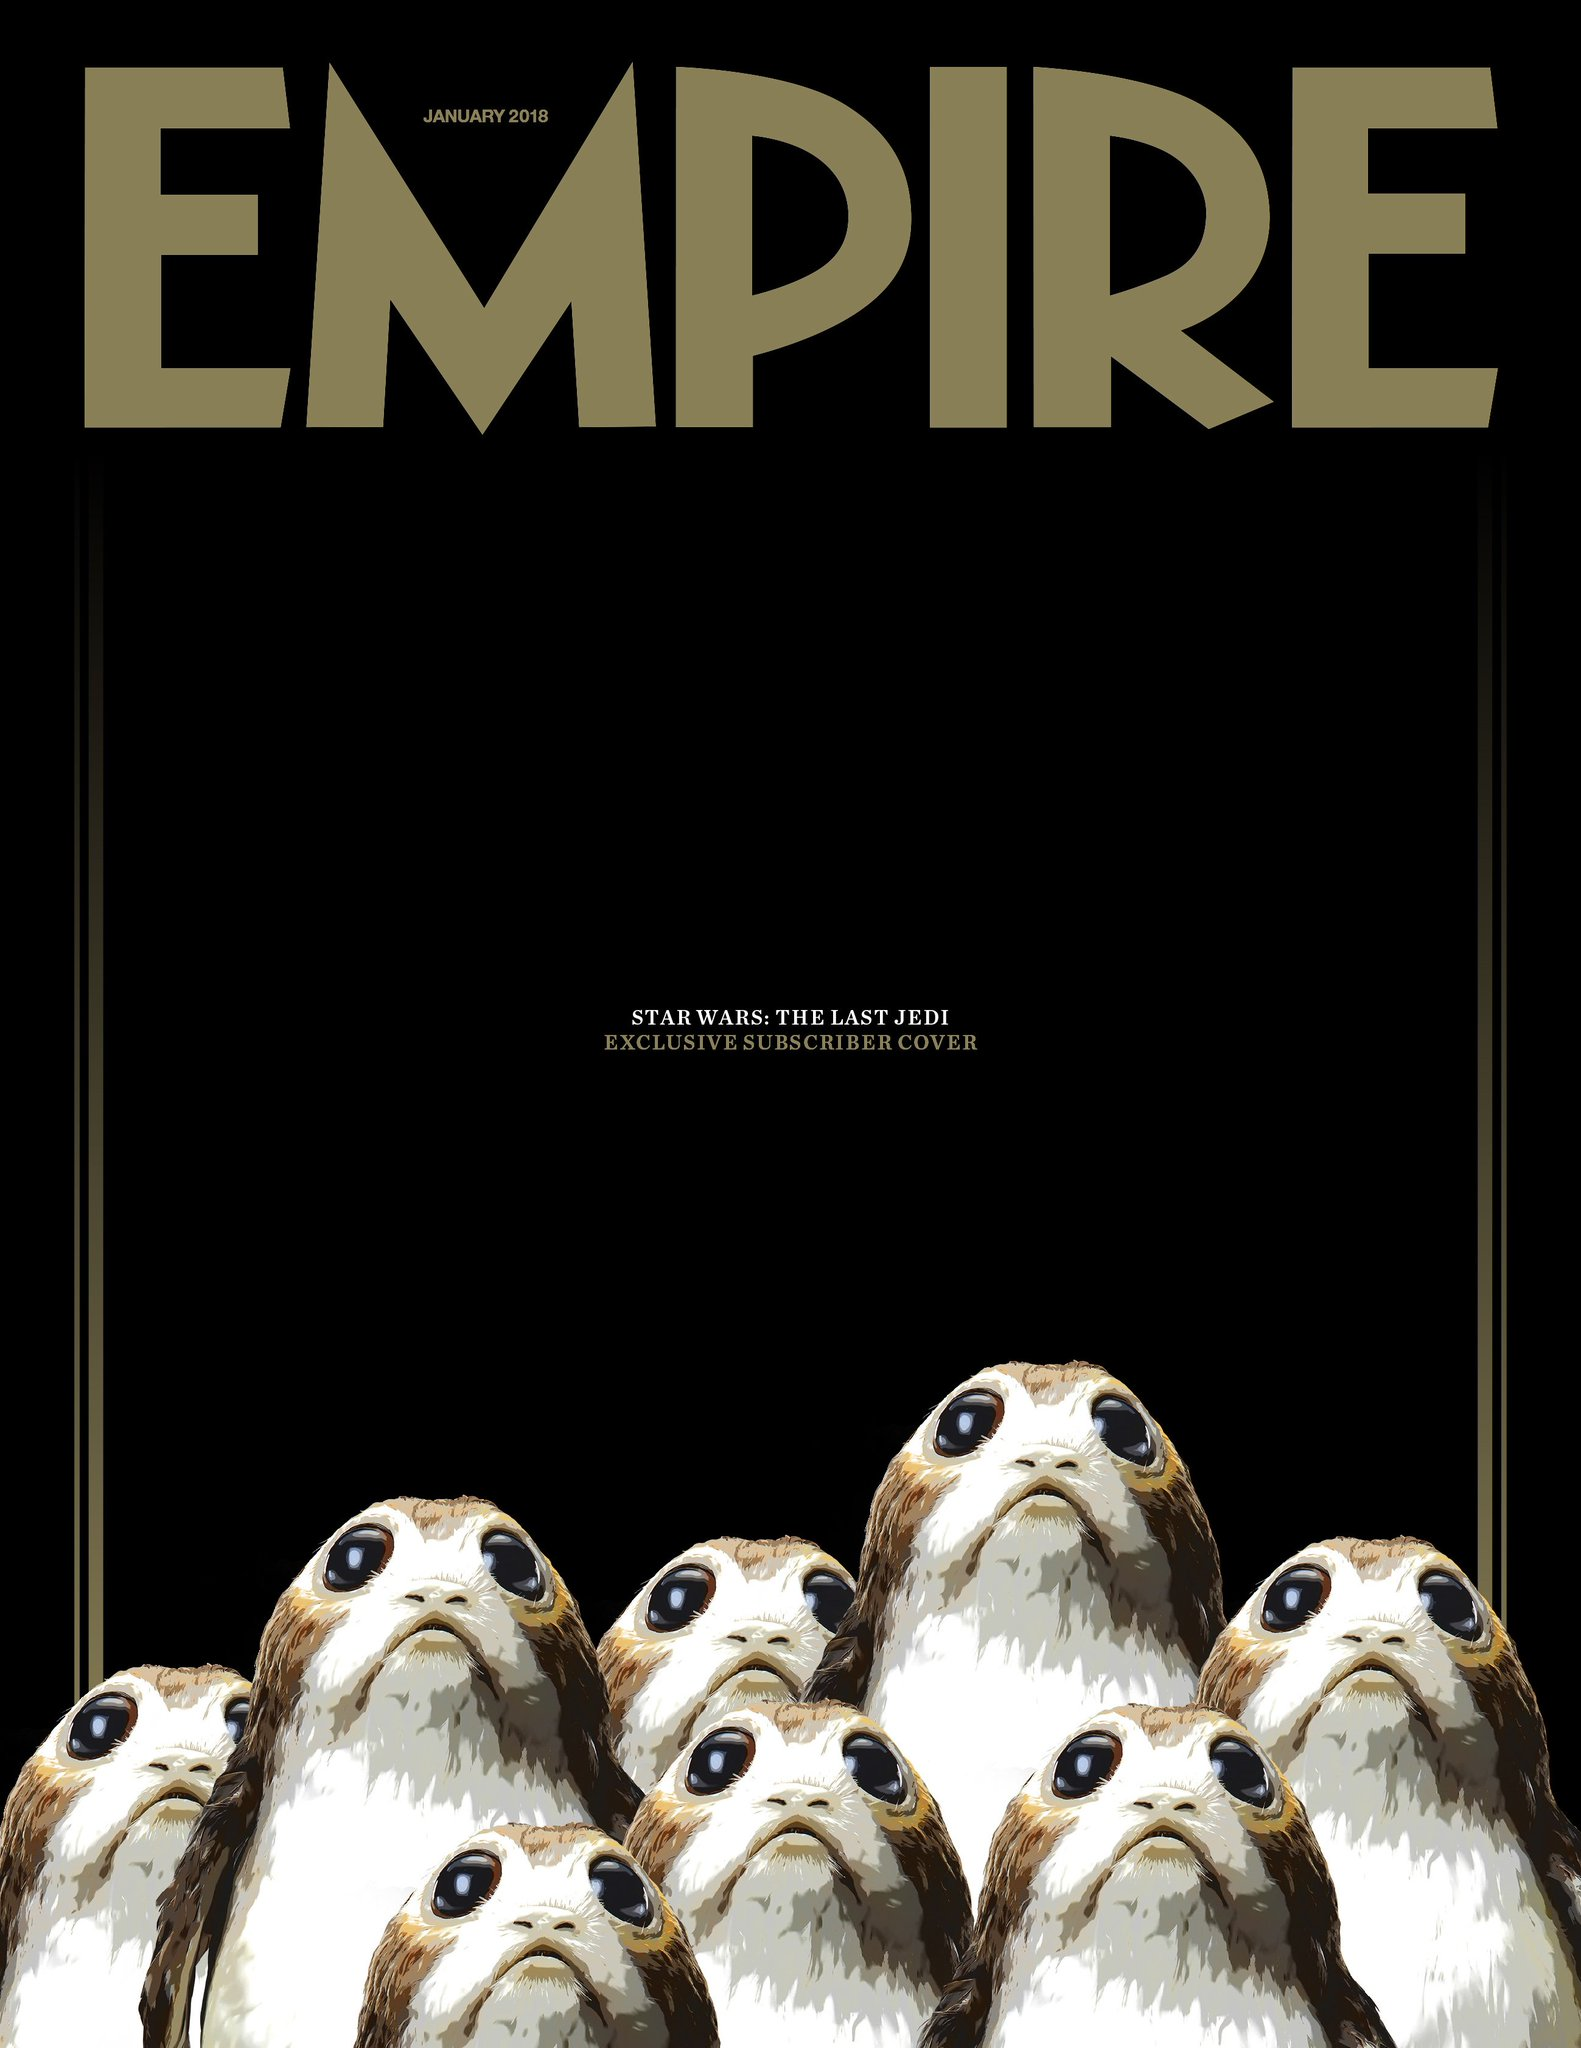 Porgs op Empire cover voor Star Wars VIII: The Last Jedi